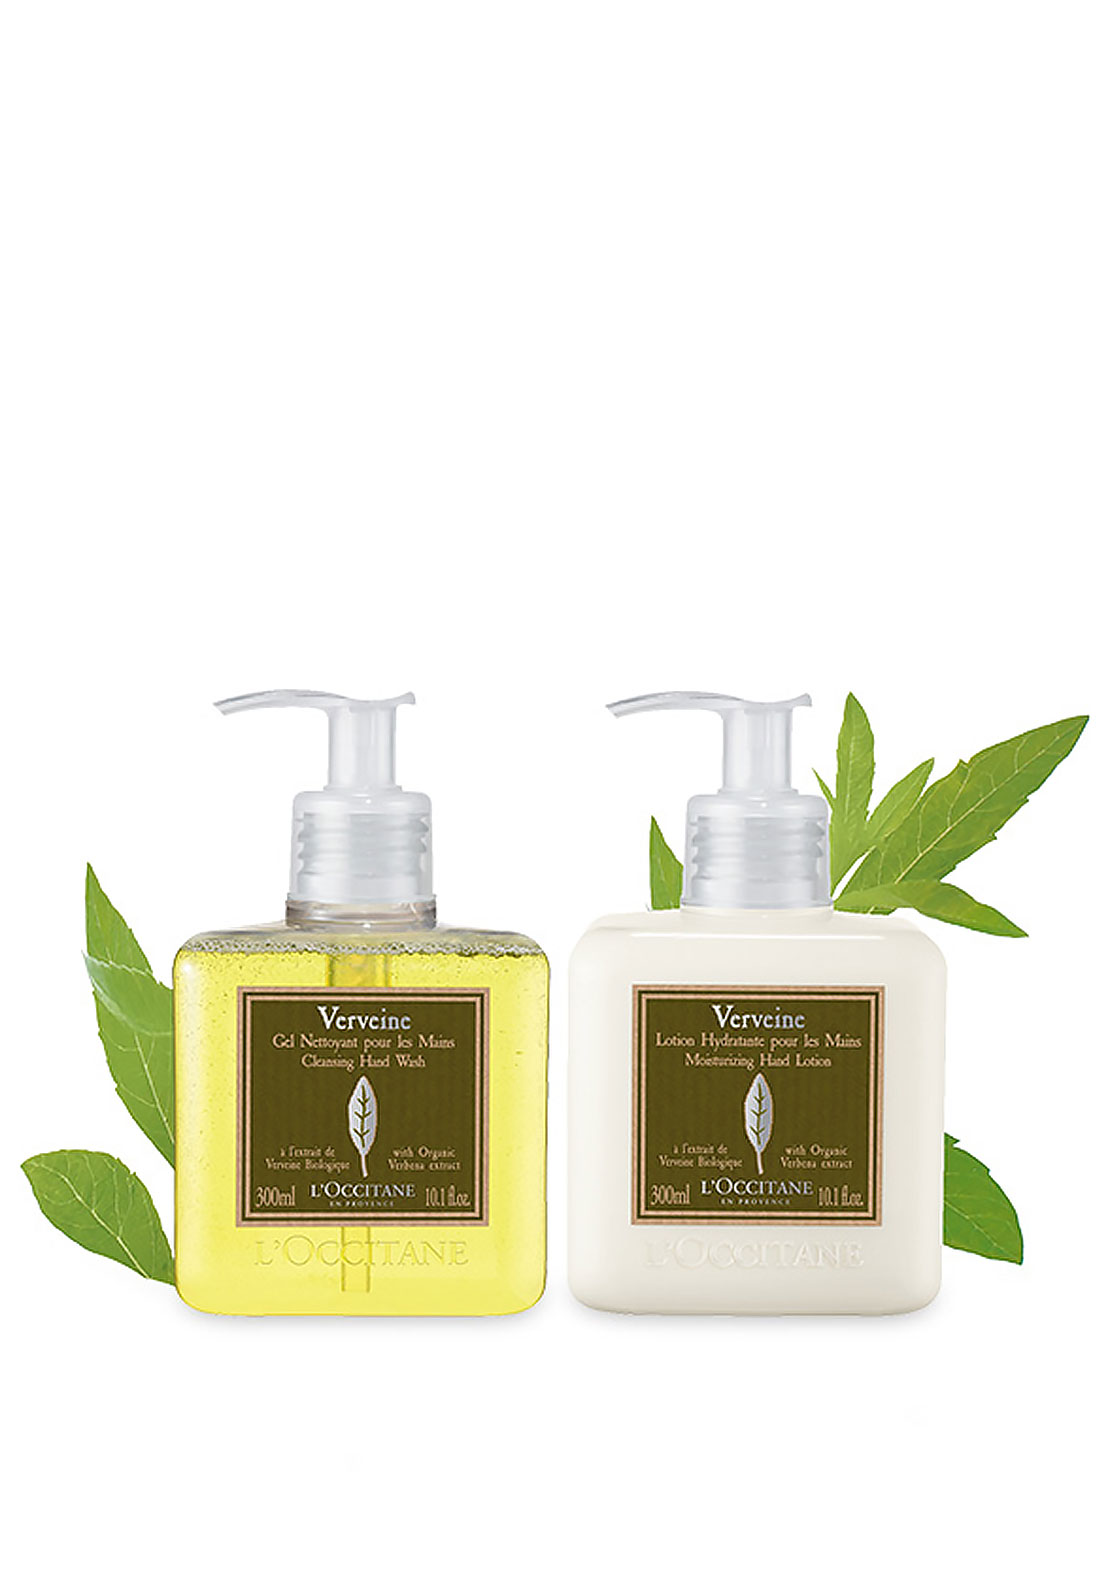 L'Occitane Verveine Hand Wash & Hand Lotion Duo